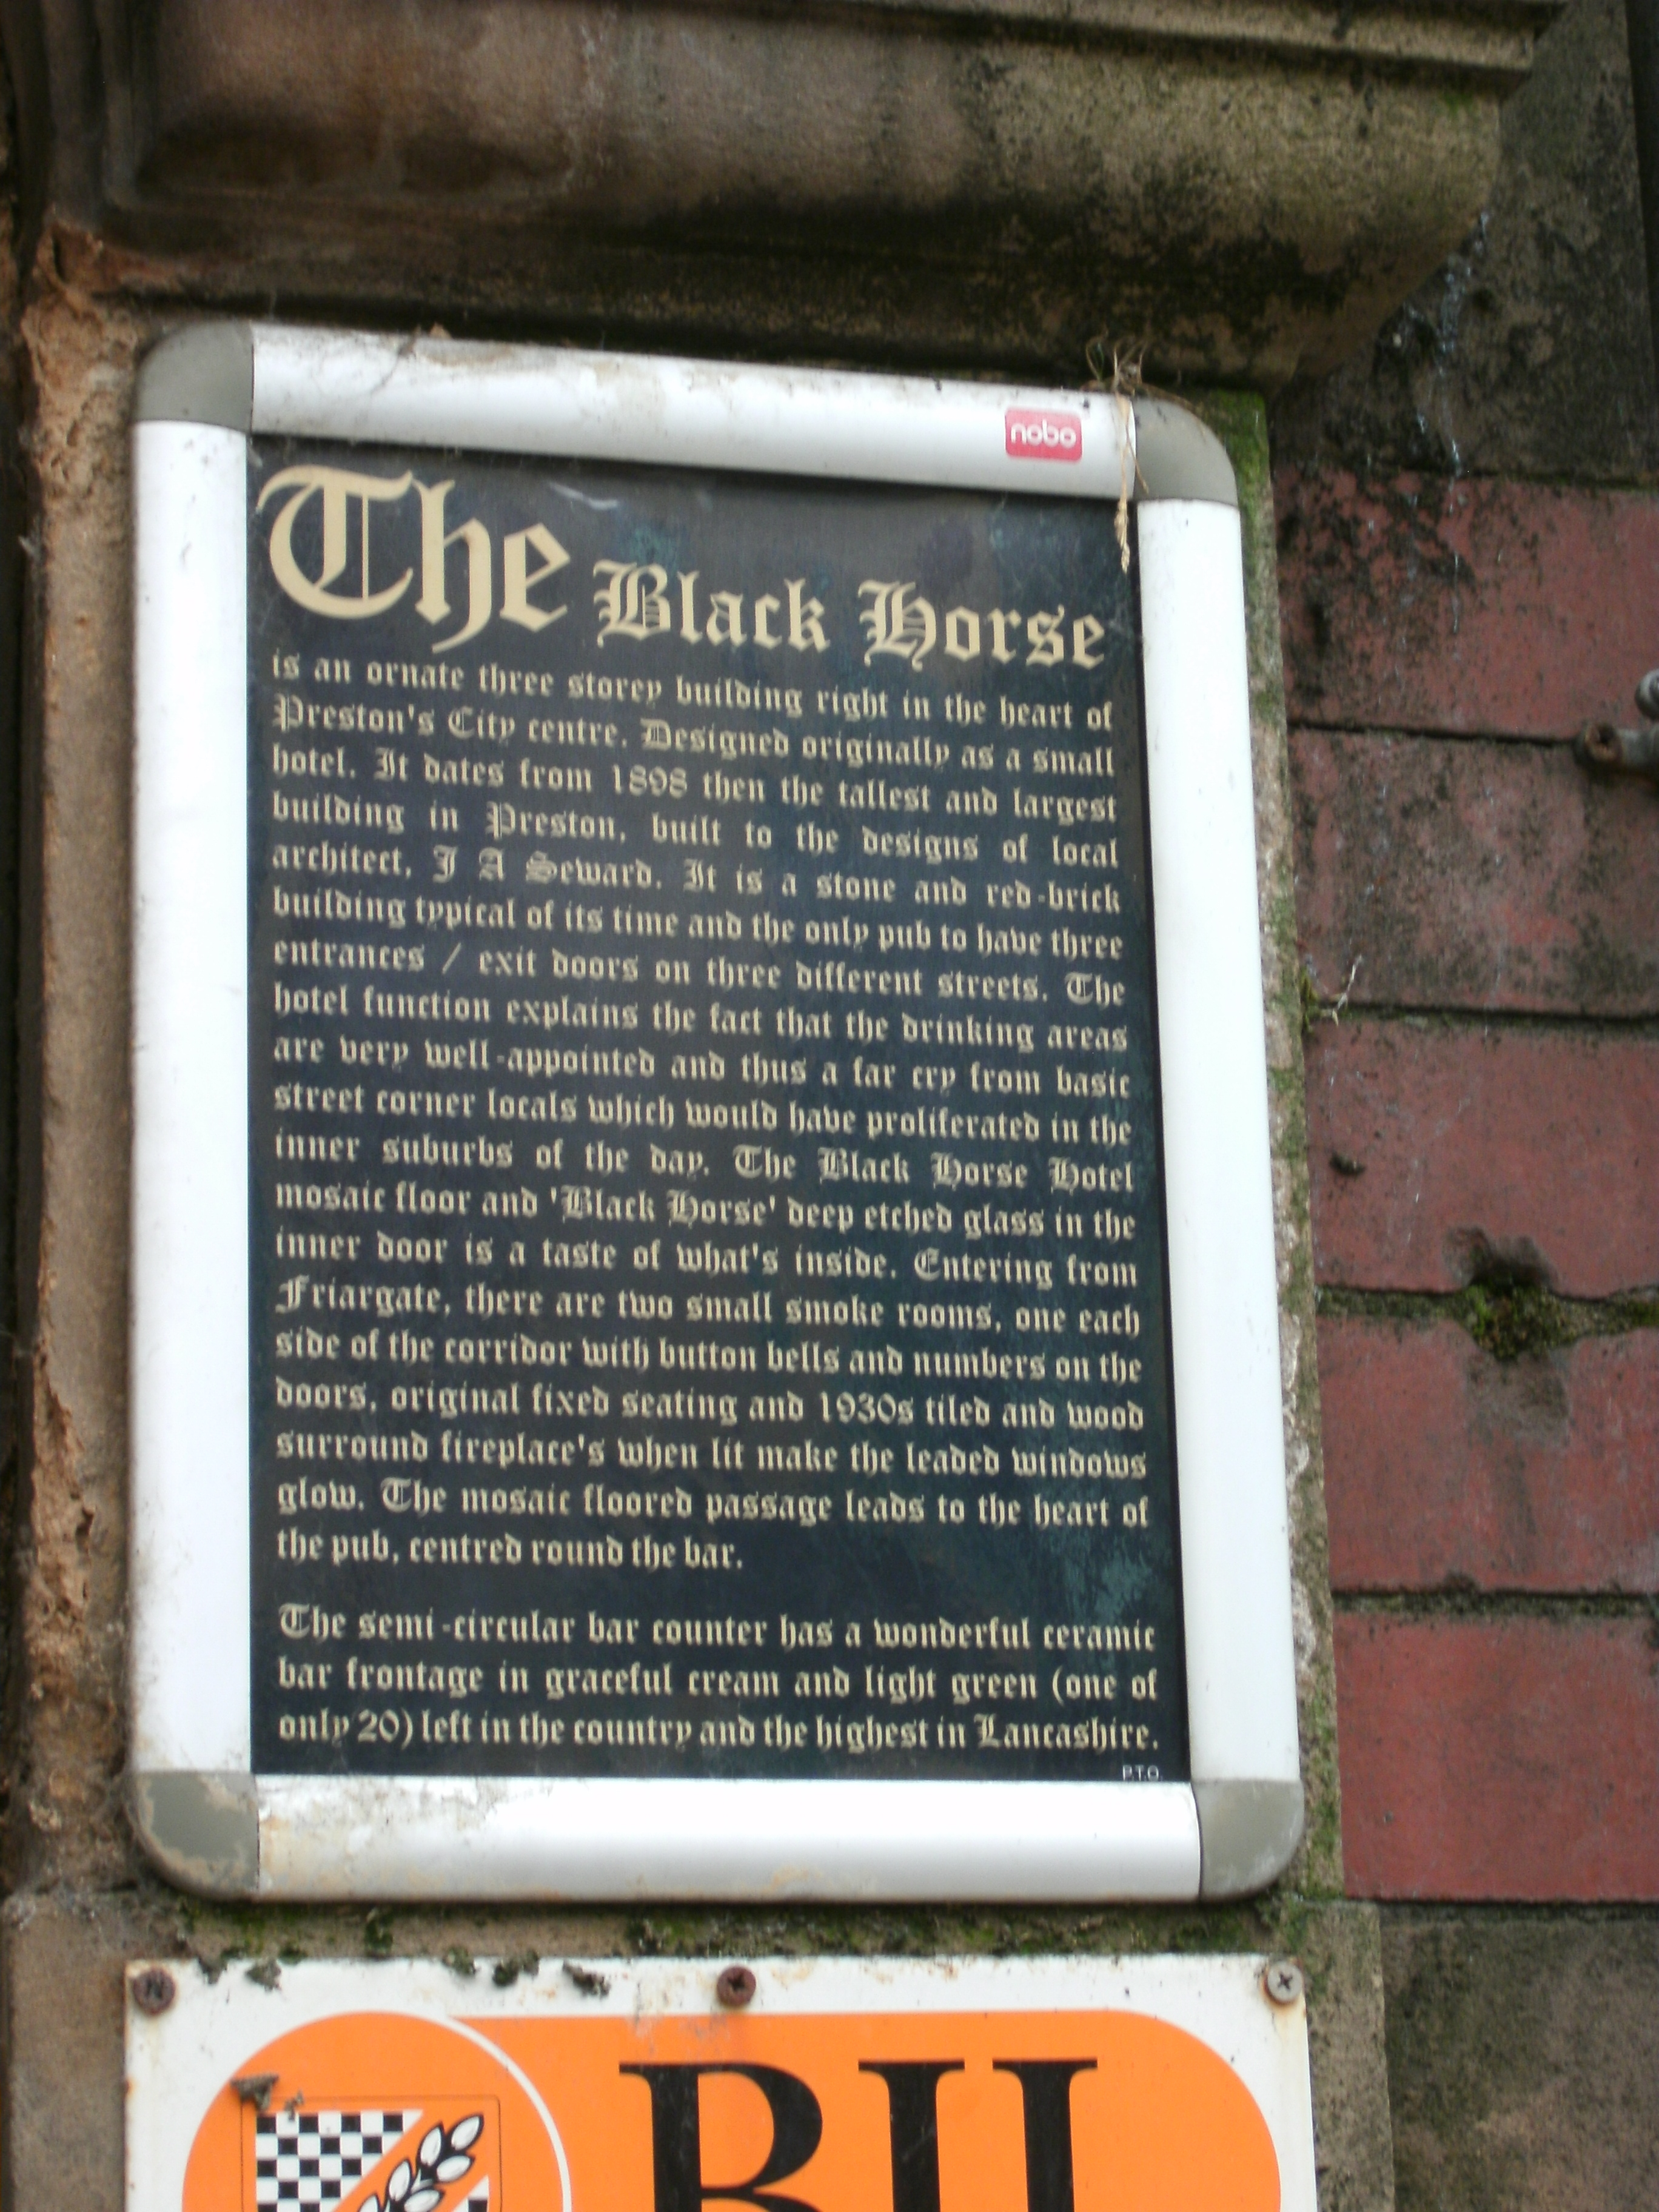 Photo taken by me – The Black Horse pub, Preston